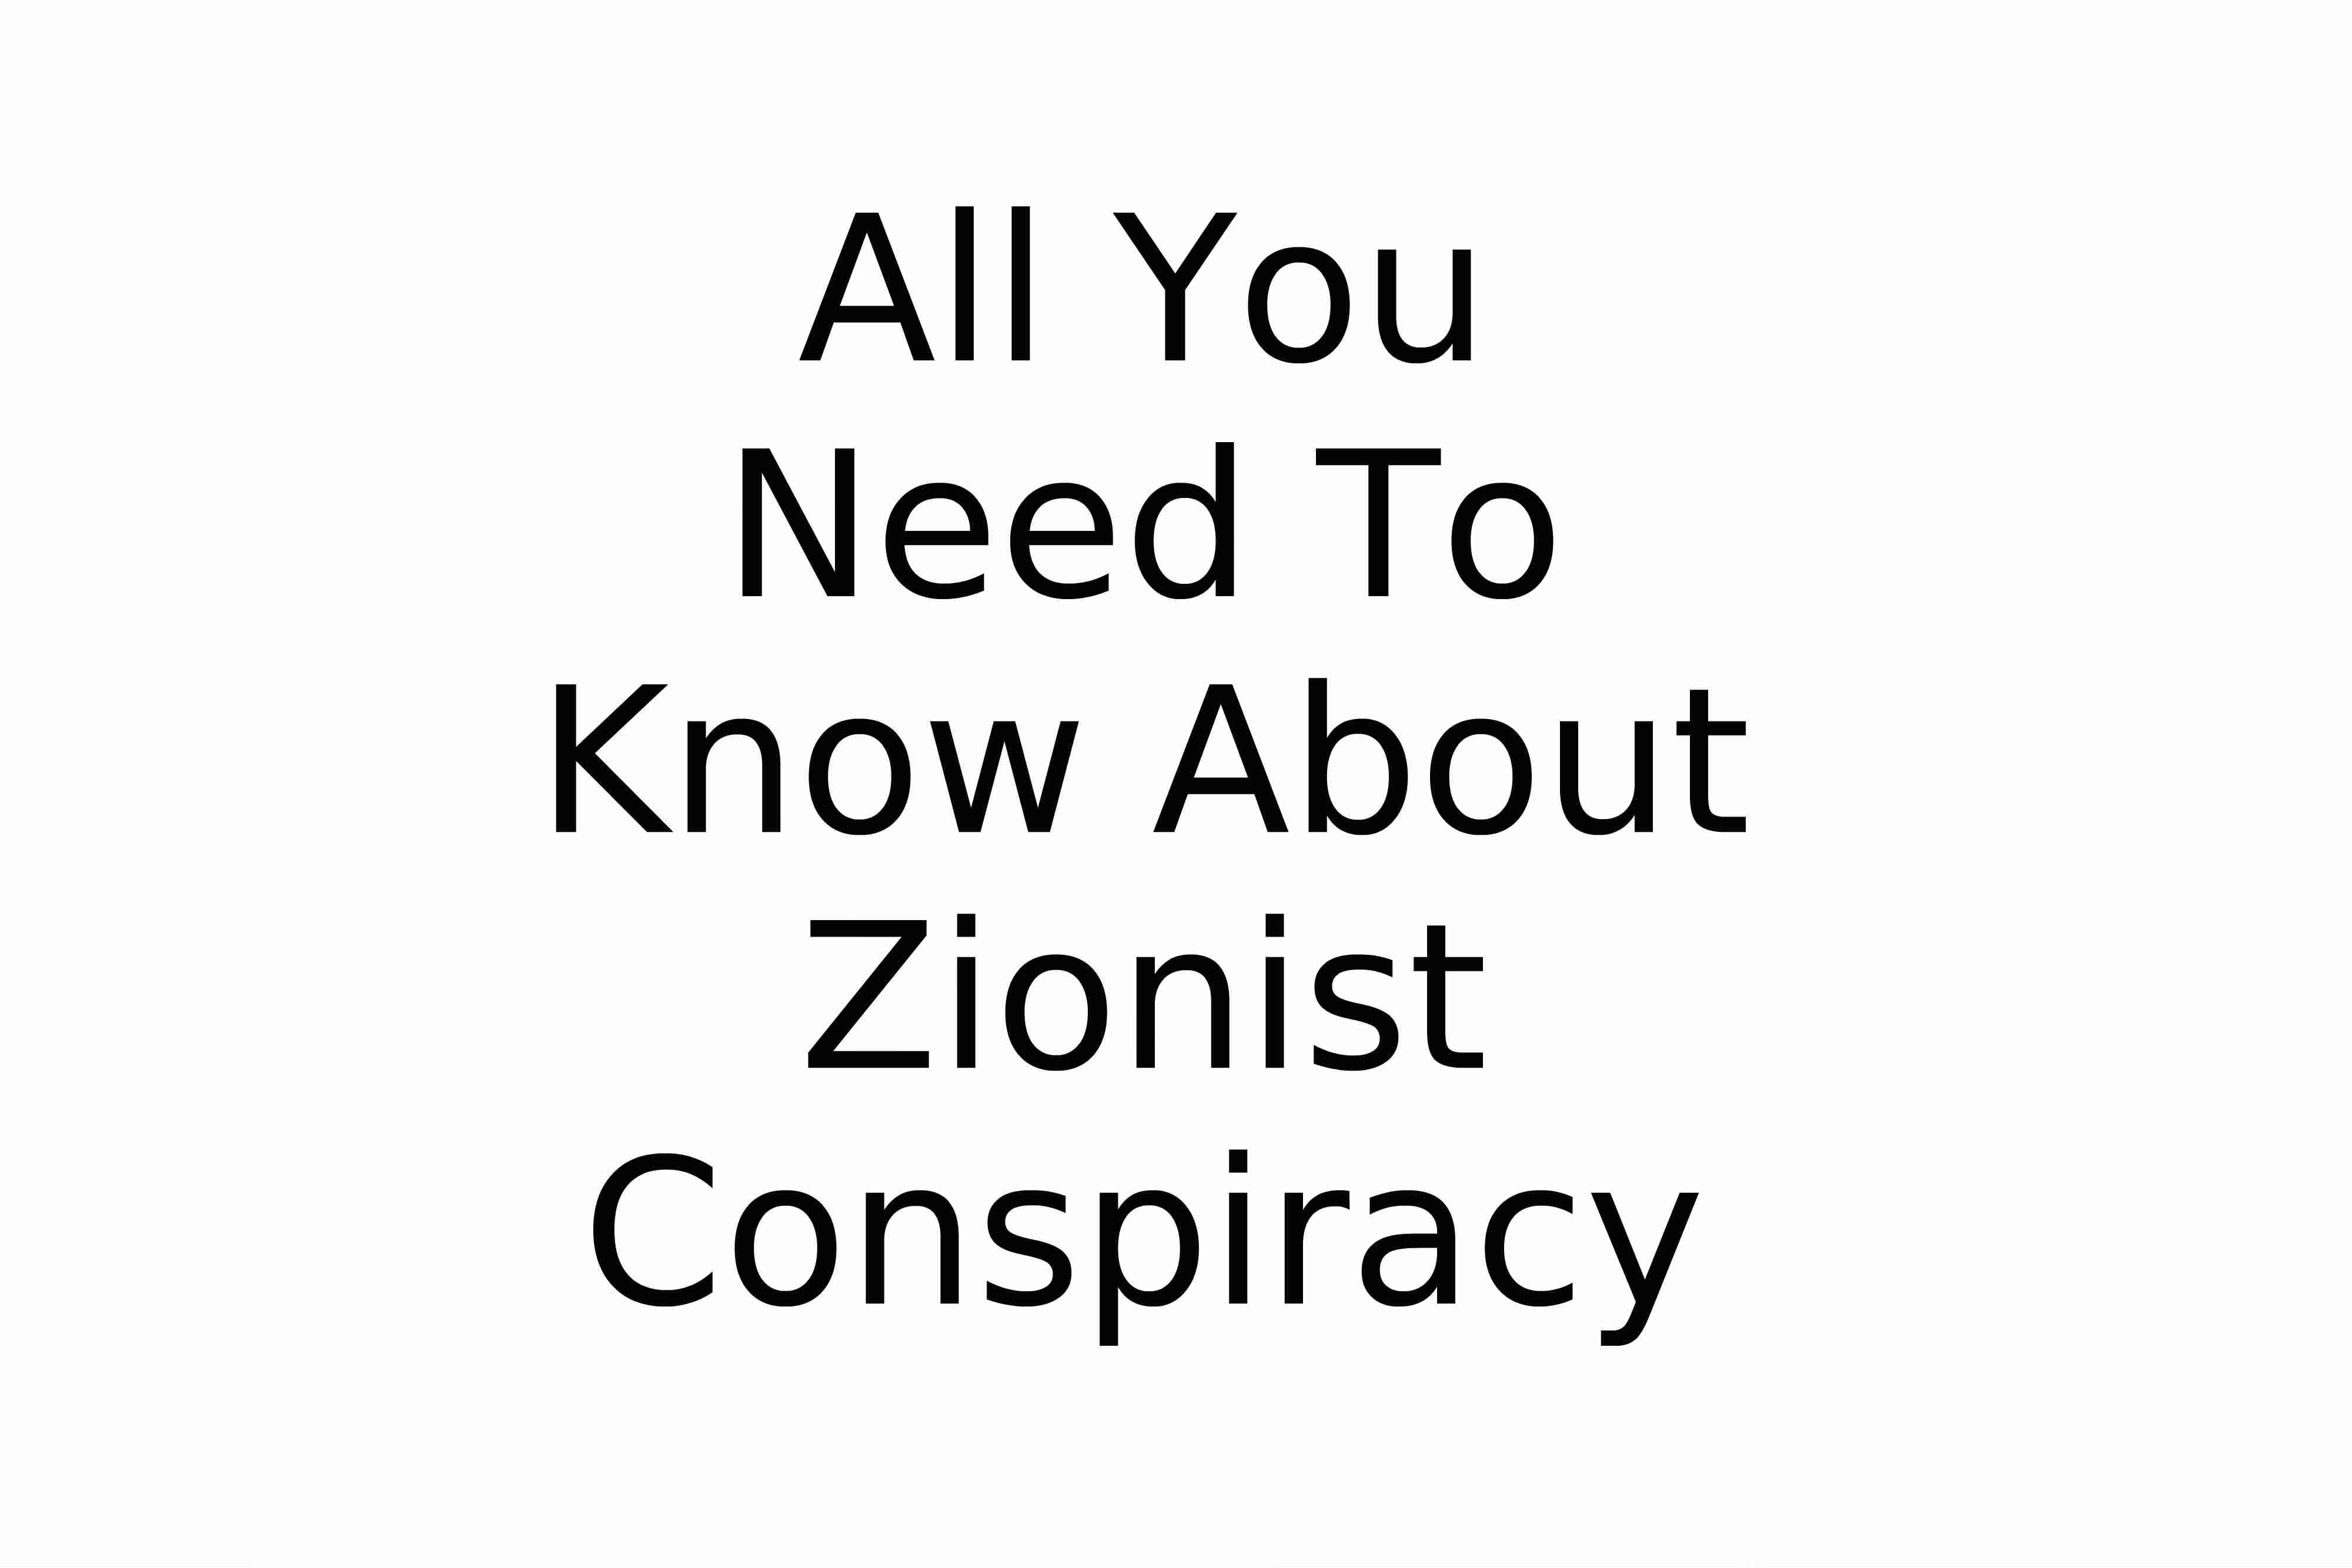 All You Need To Know About Zionist Conspiracy